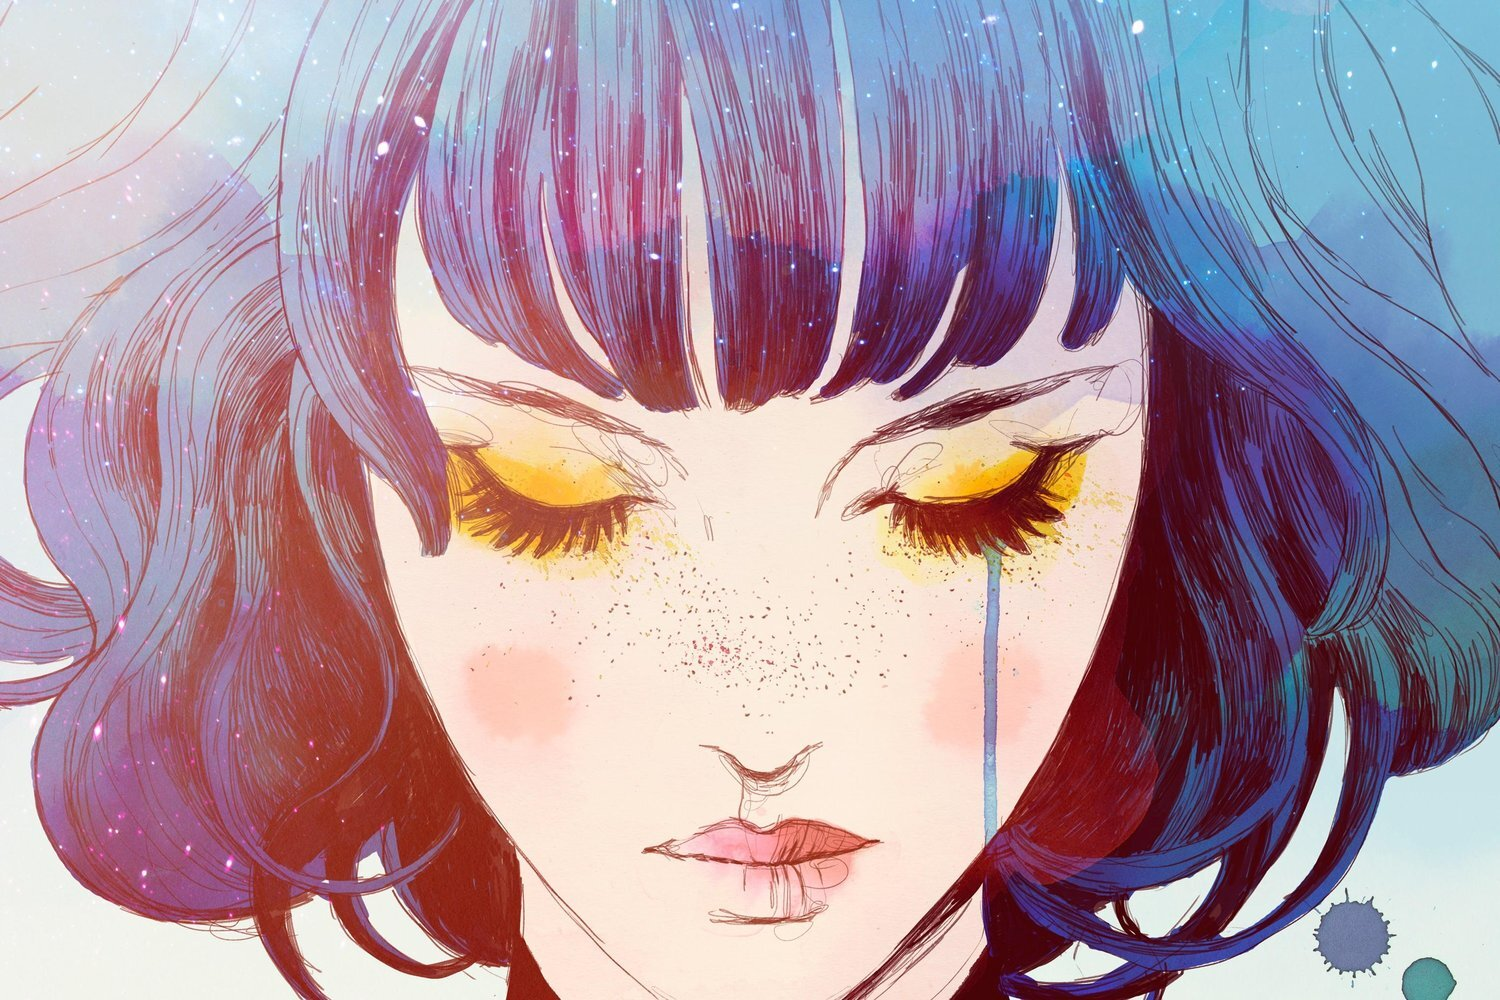 gris-preview-main-character.jpg